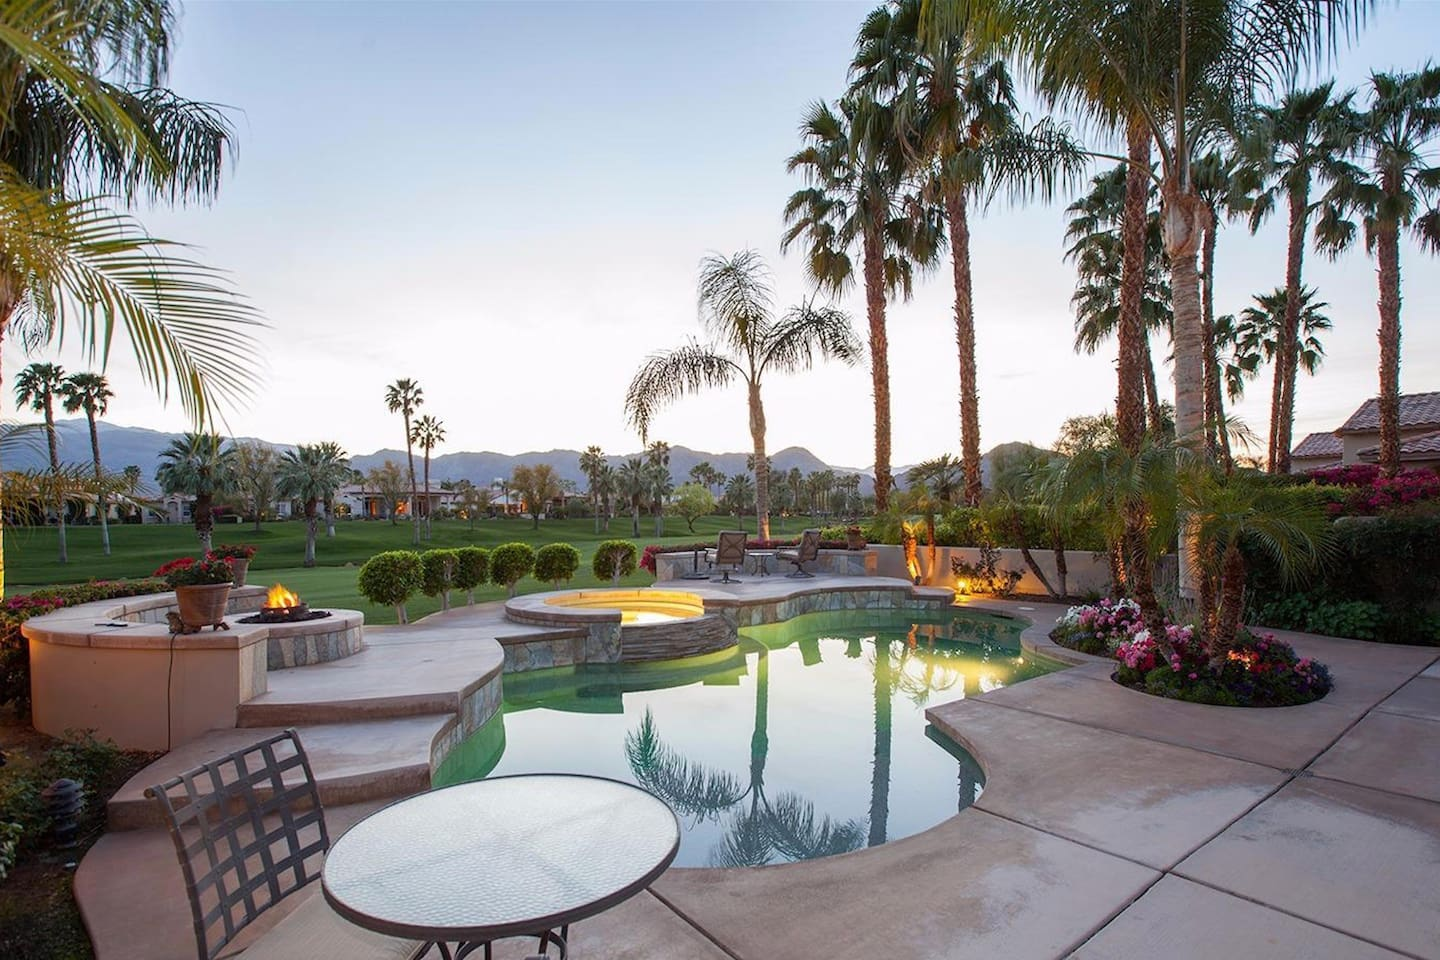 Relax - its the end of a beautiful day in La Quinta!